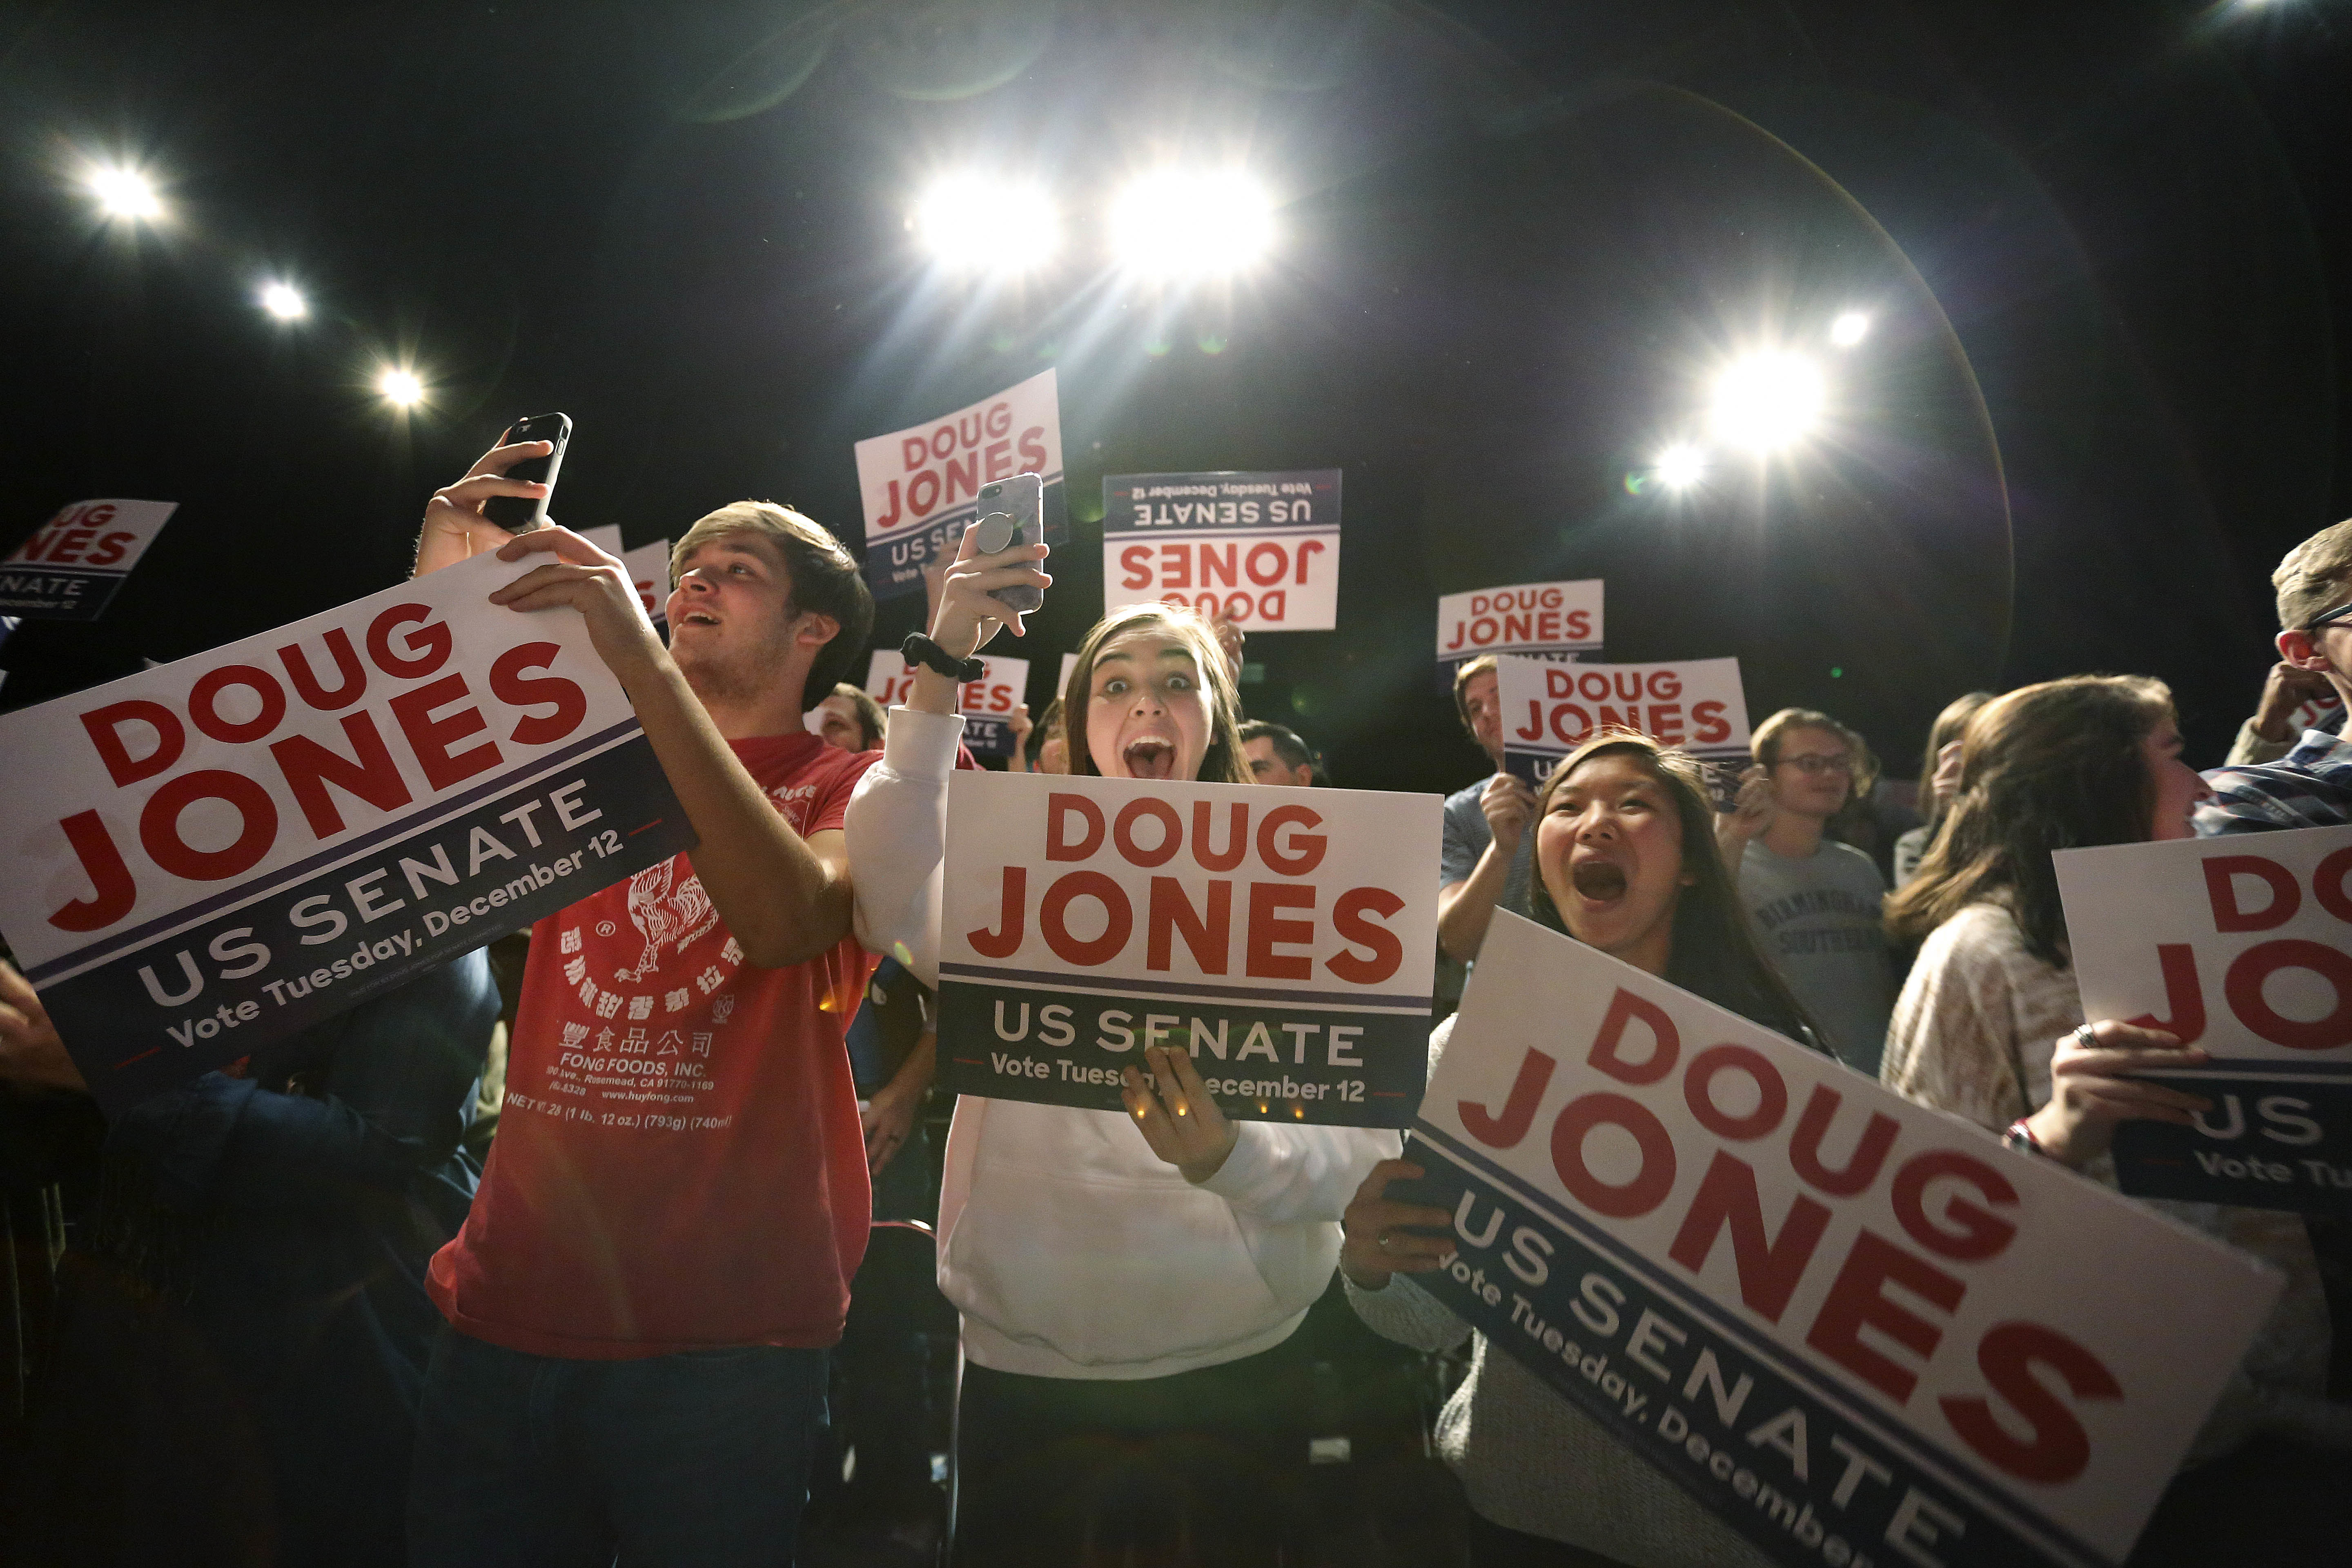 """Supporters of Democratic senatorial candidate Doug Jones cheer as he comes onstage before he speaks during a """"get out the vote rally,"""" Dec. 9, 2017, in Birmingham, Ala."""